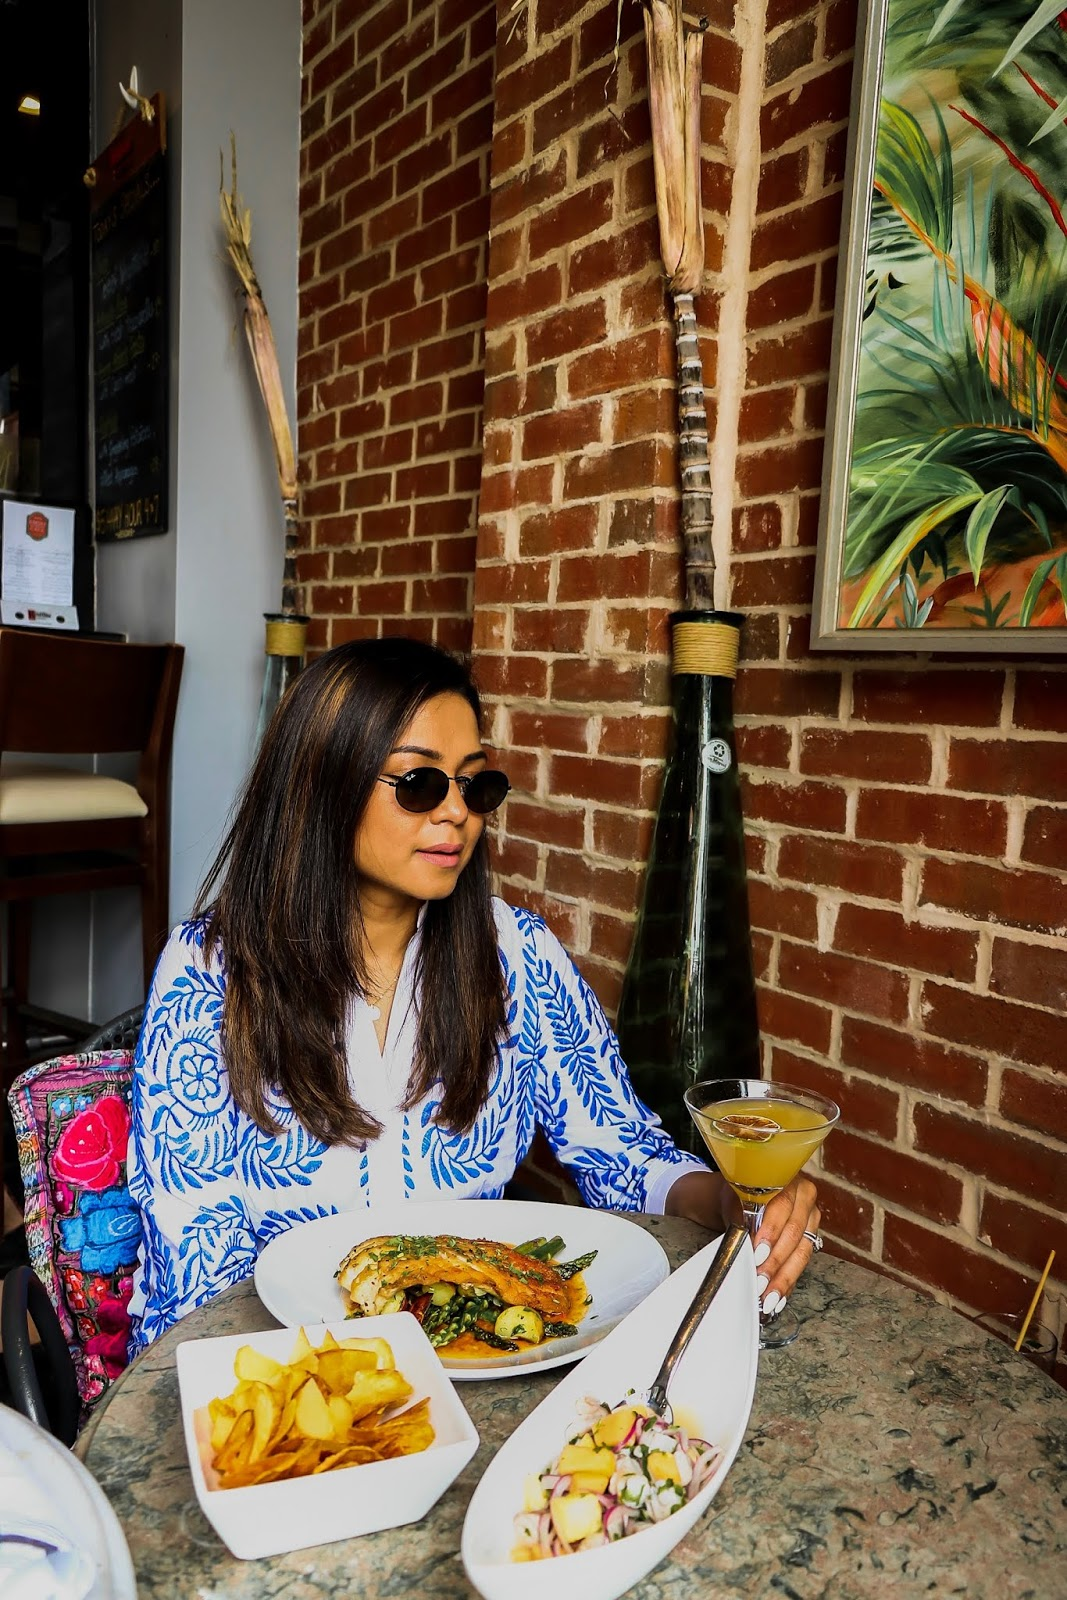 dc food life, places to go for brunch in DC, dc blogger, lifestyle, melrose georgetown, sababa, buena vida social club, high street cafe georgetown, dc foodie, myriad musings, saumya shiohare